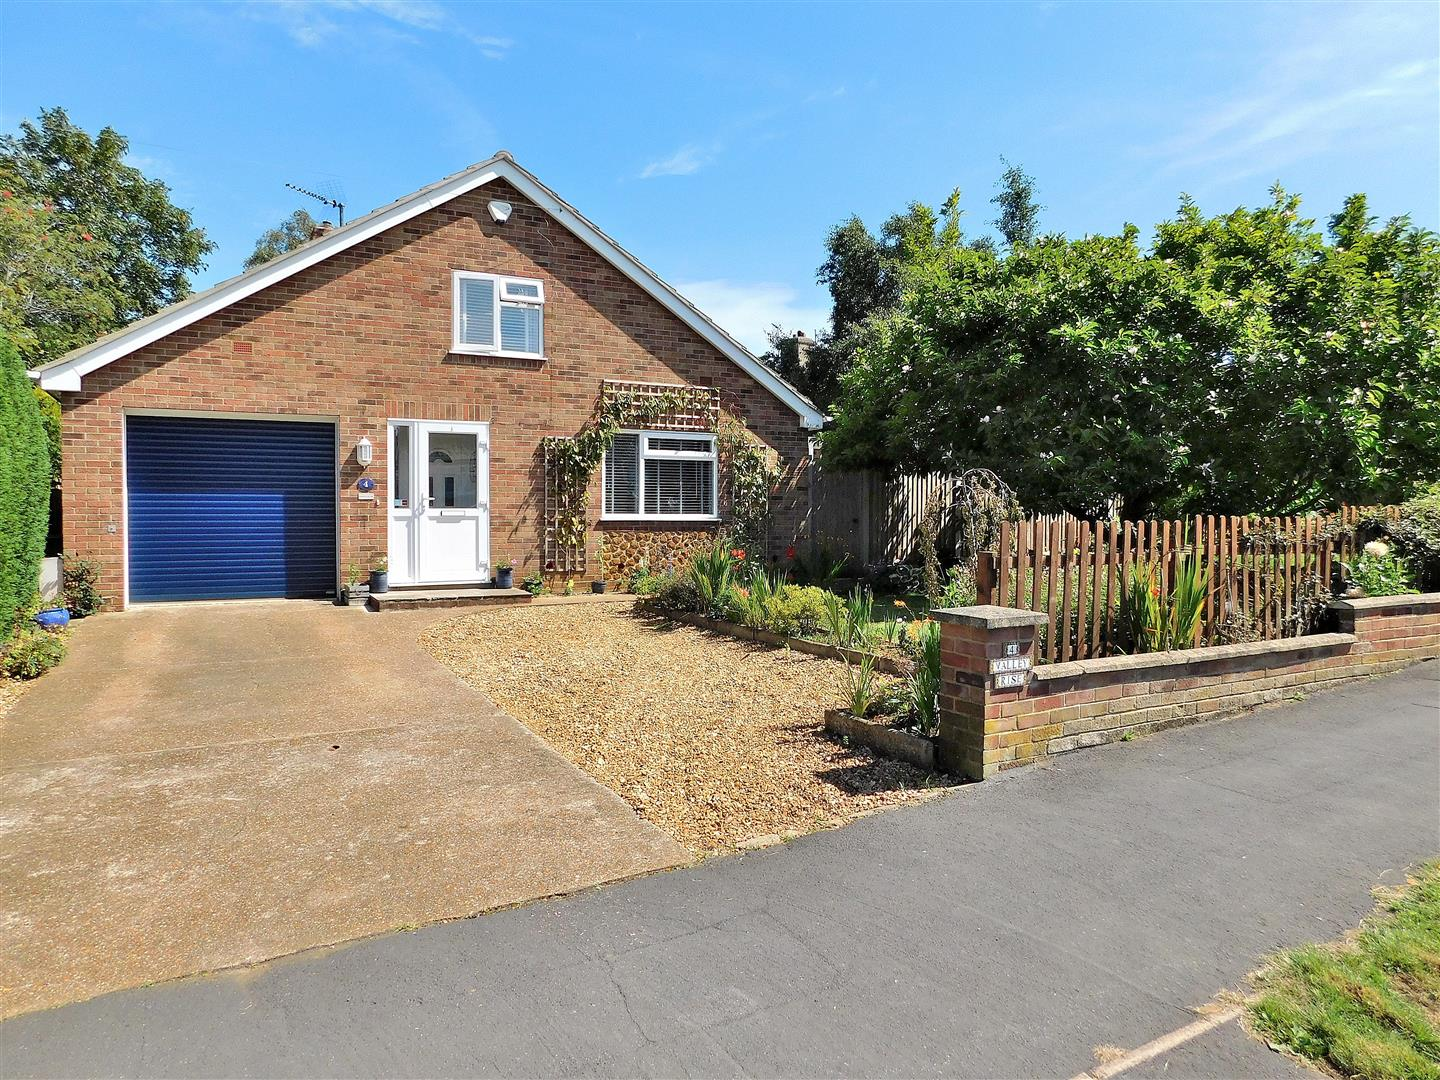 4 bed chalet for sale in King's Lynn, PE31 6PS - Property Image 1